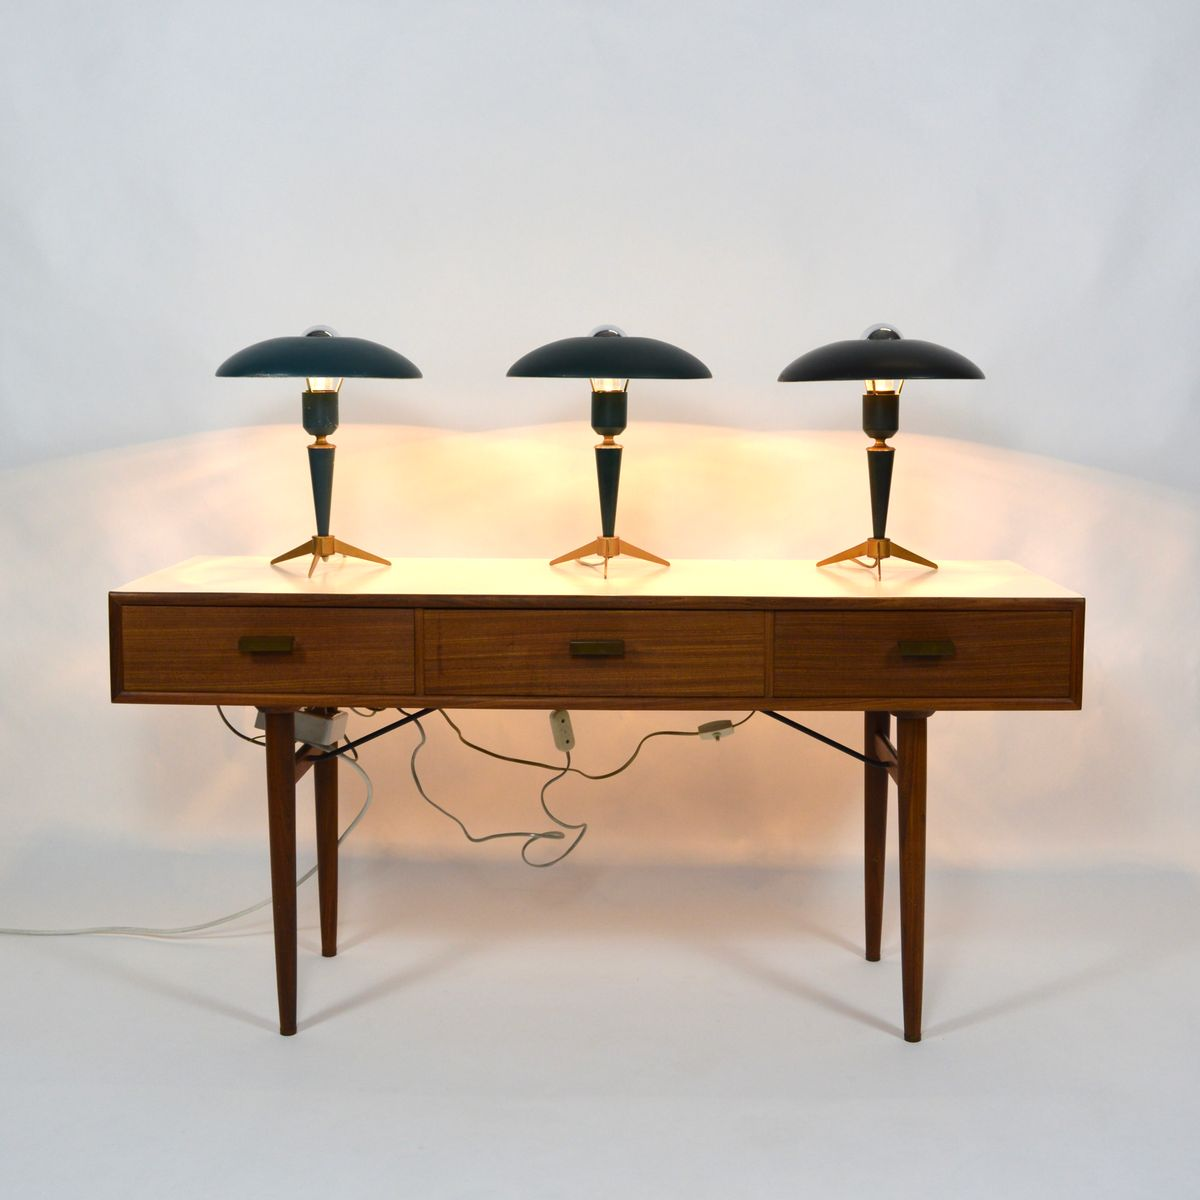 Tripod table lamps by louis kalff for philips 1958 set of 3 for tripod table lamps by louis kalff for philips 1958 set of 3 mozeypictures Gallery